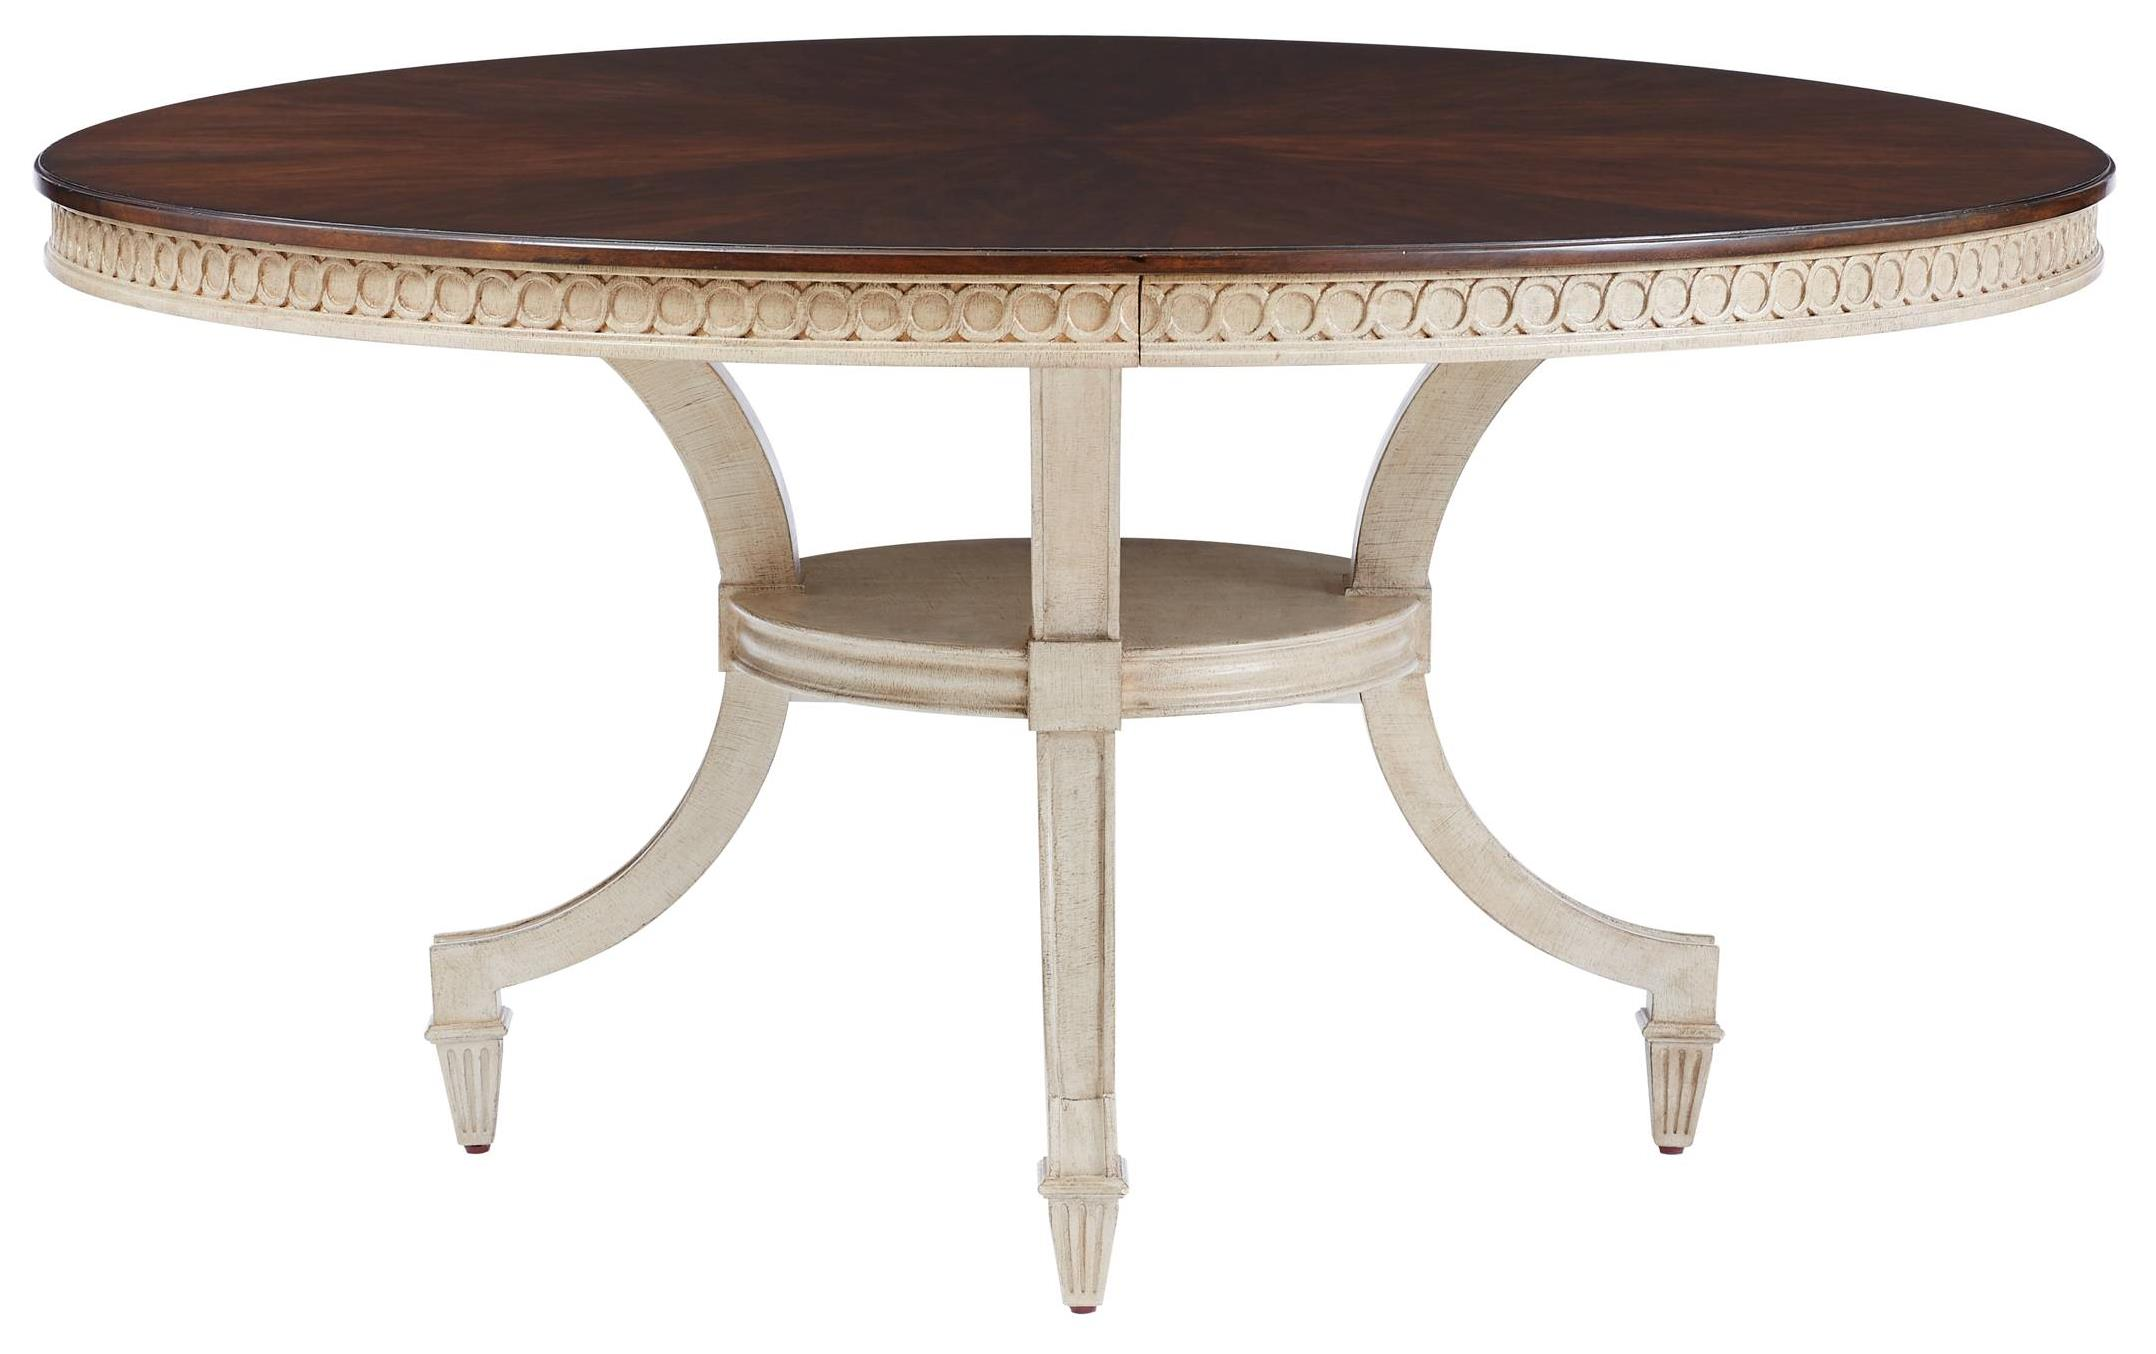 Stanley Furniture Villa Couture Ana Round Table - Item Number: 510-21-30